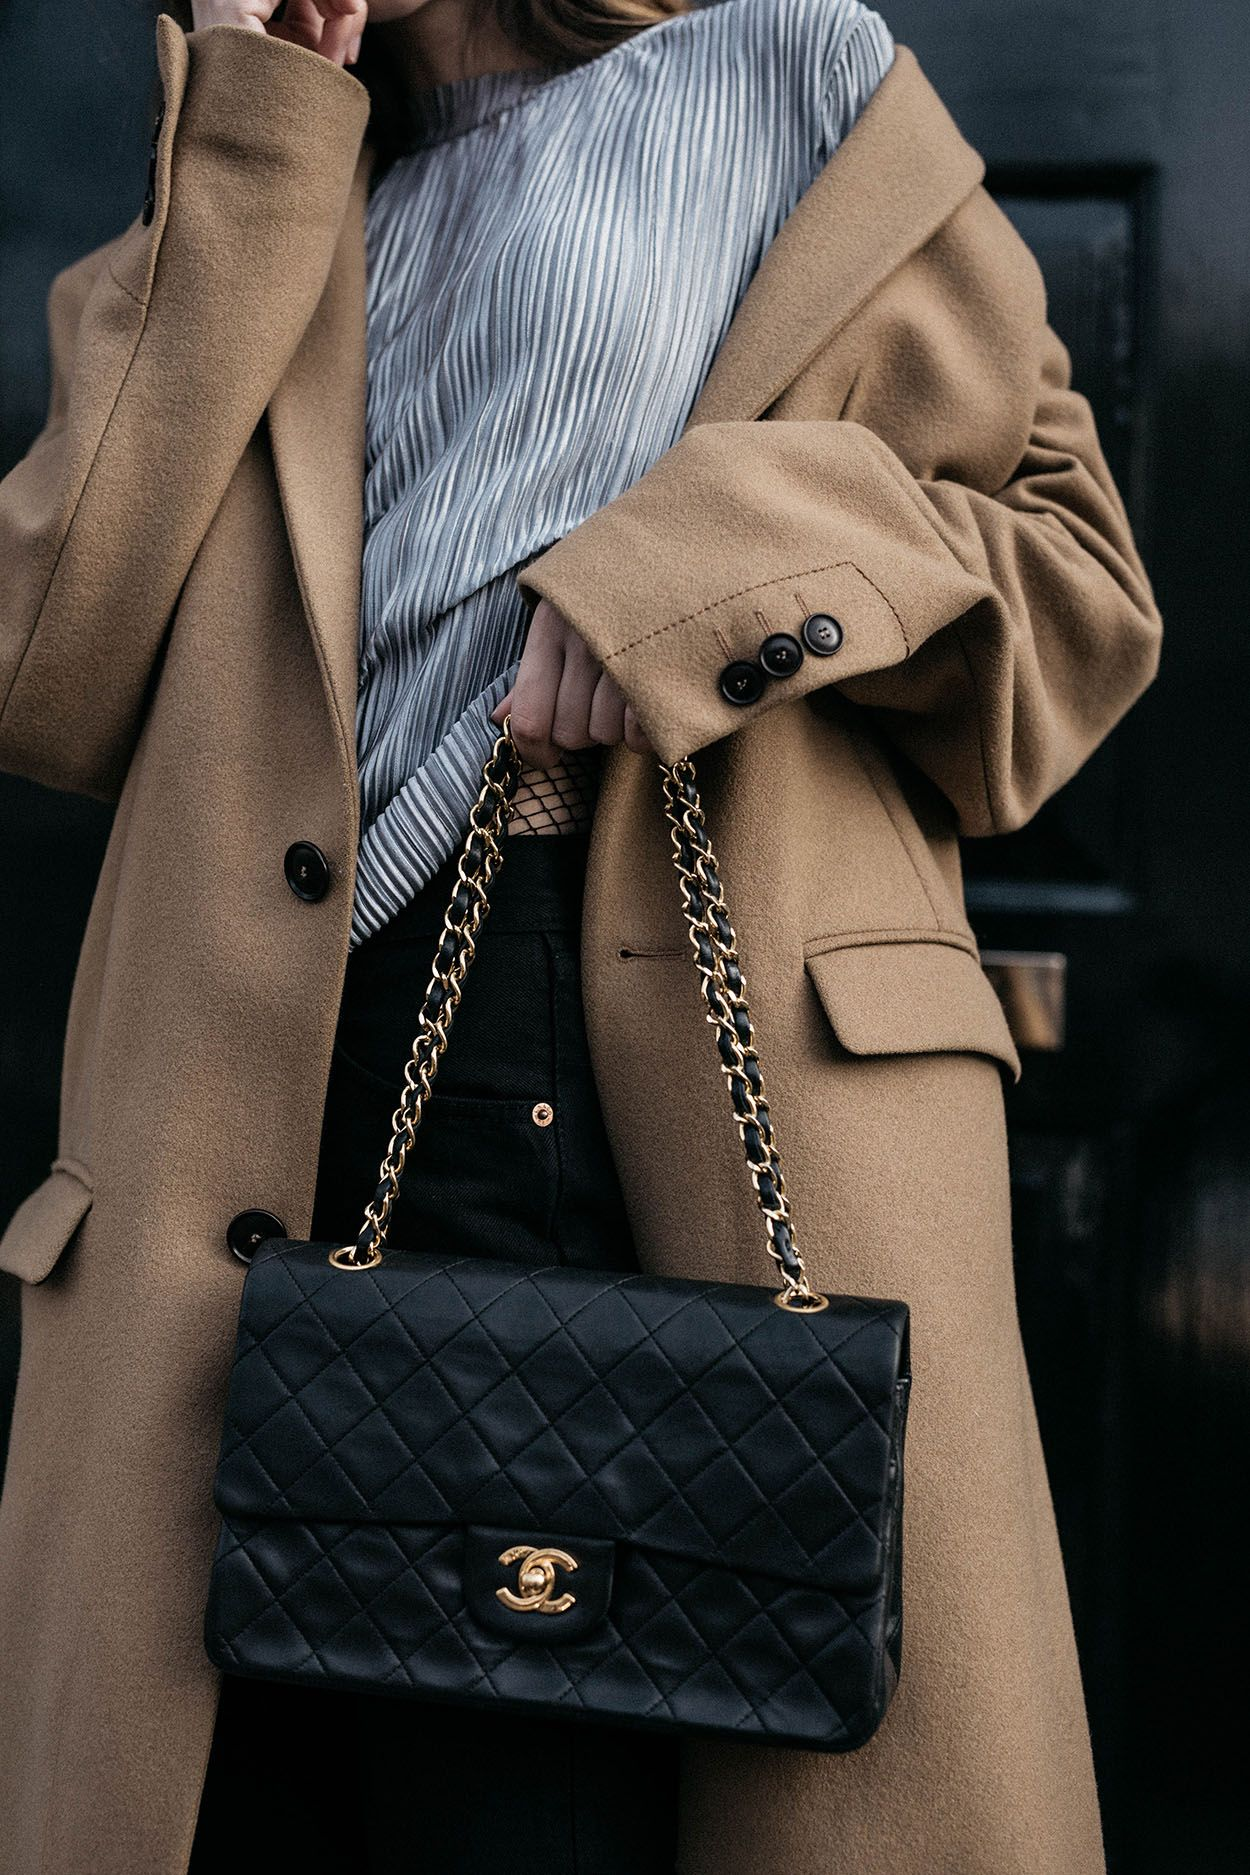 68047a3e8 The Ultimate Classics vintage Chanel 2.55 flap bag masculine camel coat  fashion styling • The Fashion Cuisine